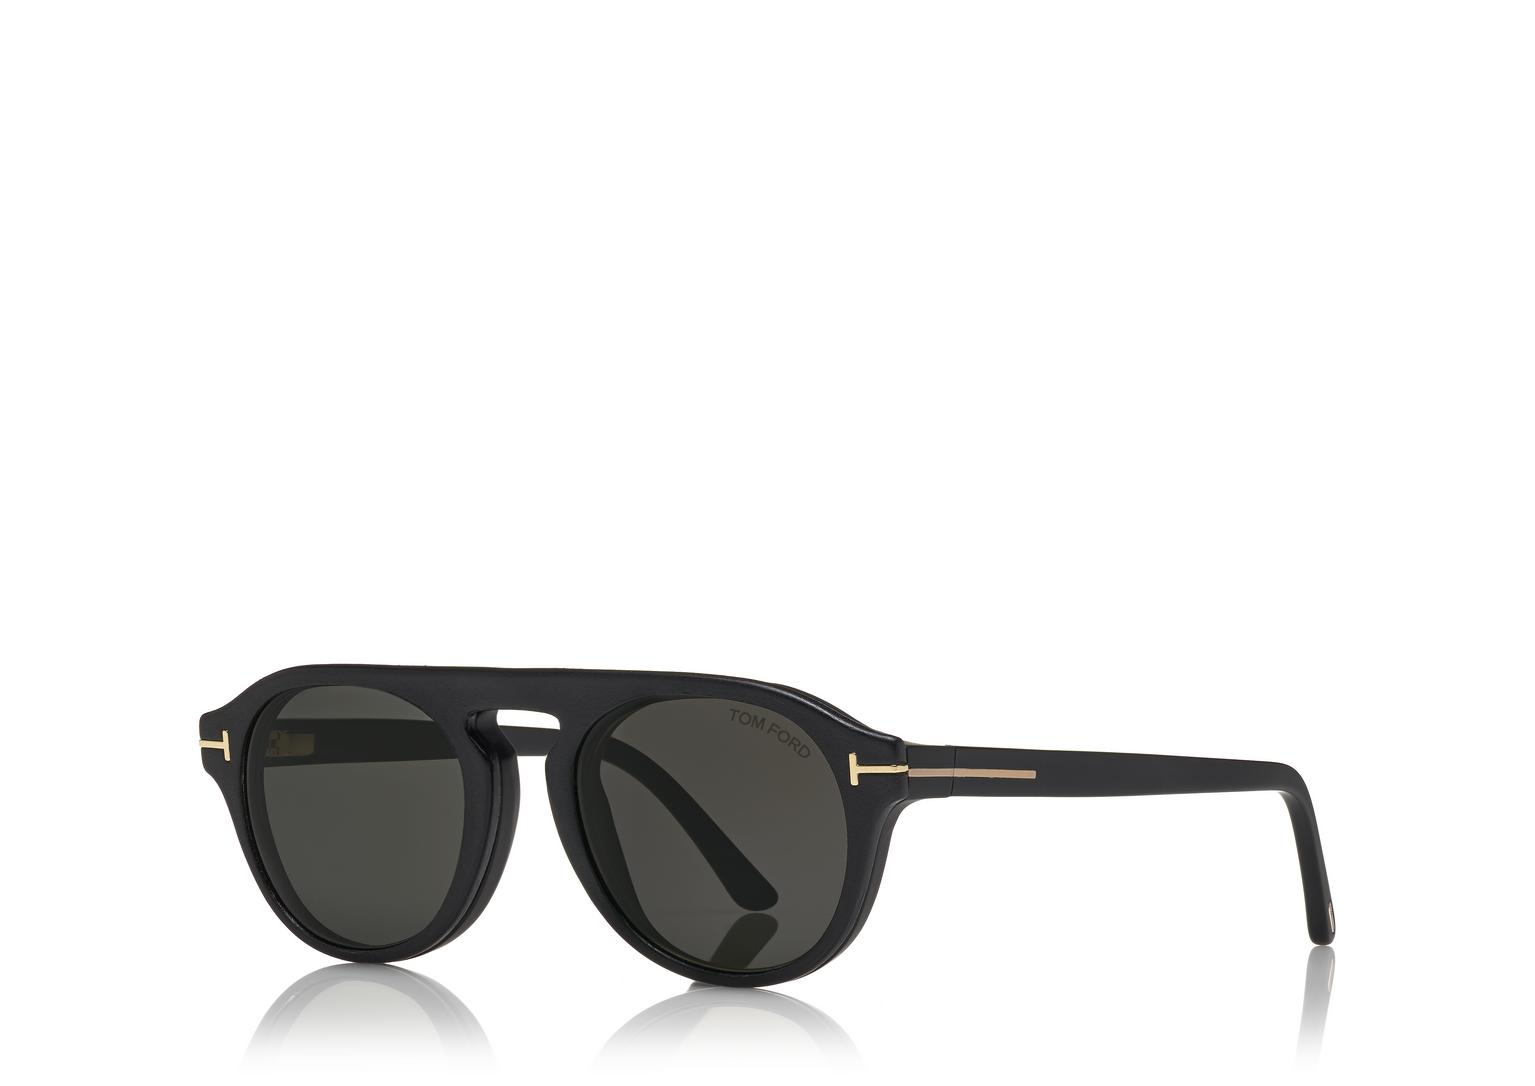 Tom Ford - Occhiale da Sole Uomo, Matte Black/Smoke Grey Shaded FT5533-B  02A  C49